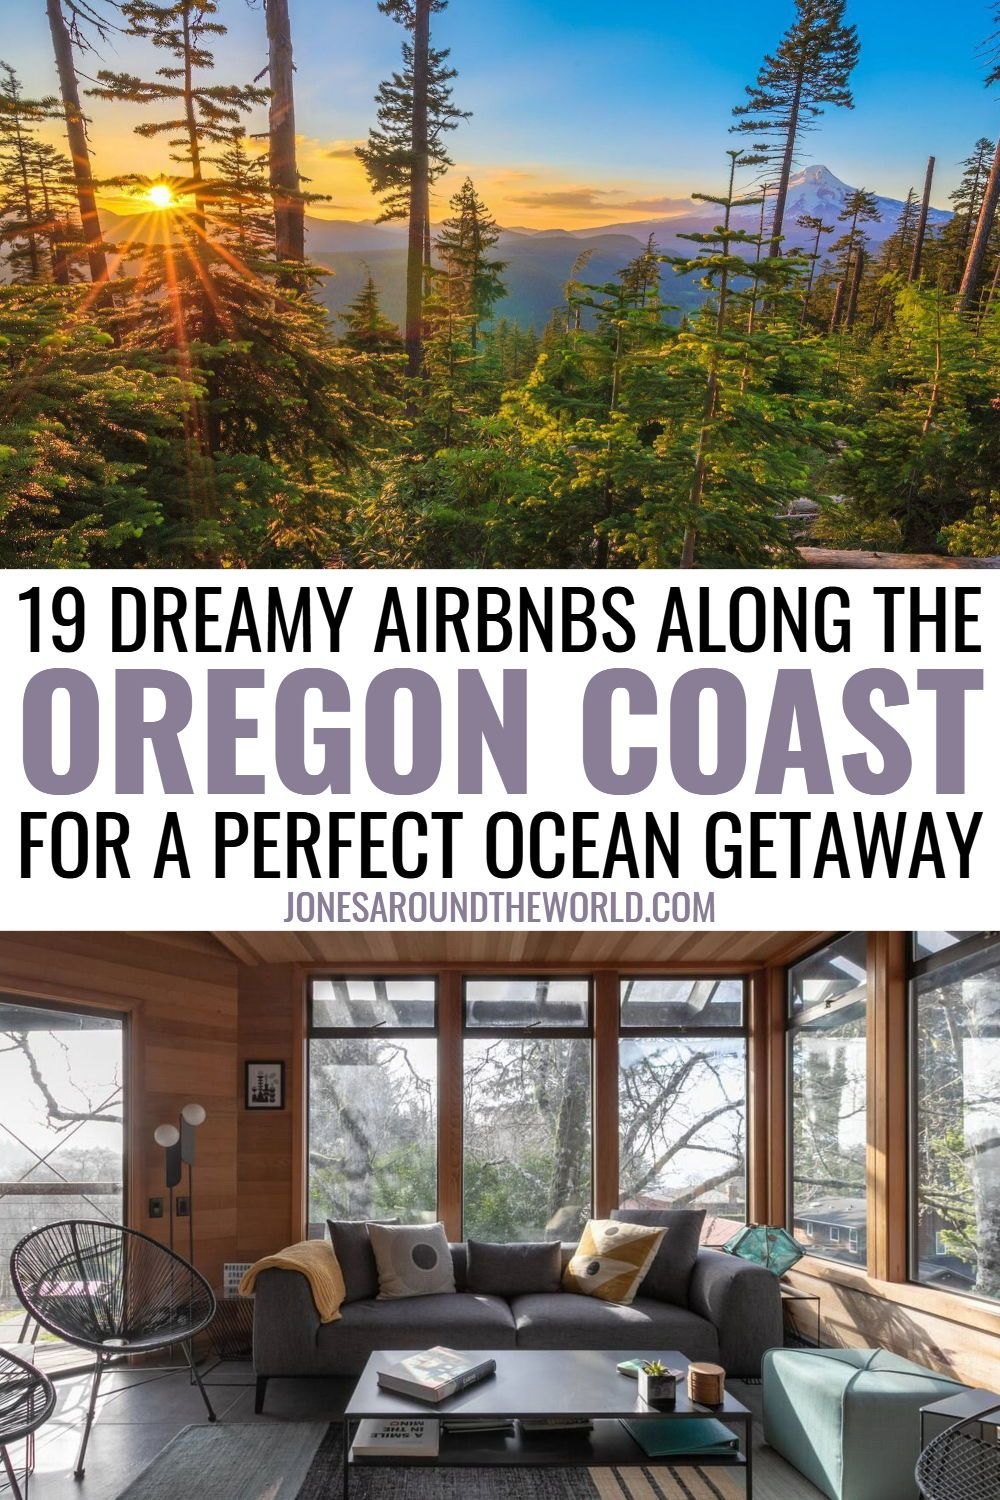 Planning a road trip along the west coast and looking for some amazing Airbnb Oregon Coast vacation rentals? I've put together this list of incredible places to stay! With stunning beaches, jaw-dropping coastal views, and breathtaking landscapes, the Pacific Northwest Coastal Highway region is famed for being beautiful and packed with outdoor activities. The astounding natural scenery and quirky towns of the Oregon Coast make it the ideal getaway destination. #oregoncoast #oregon #pacificcoast